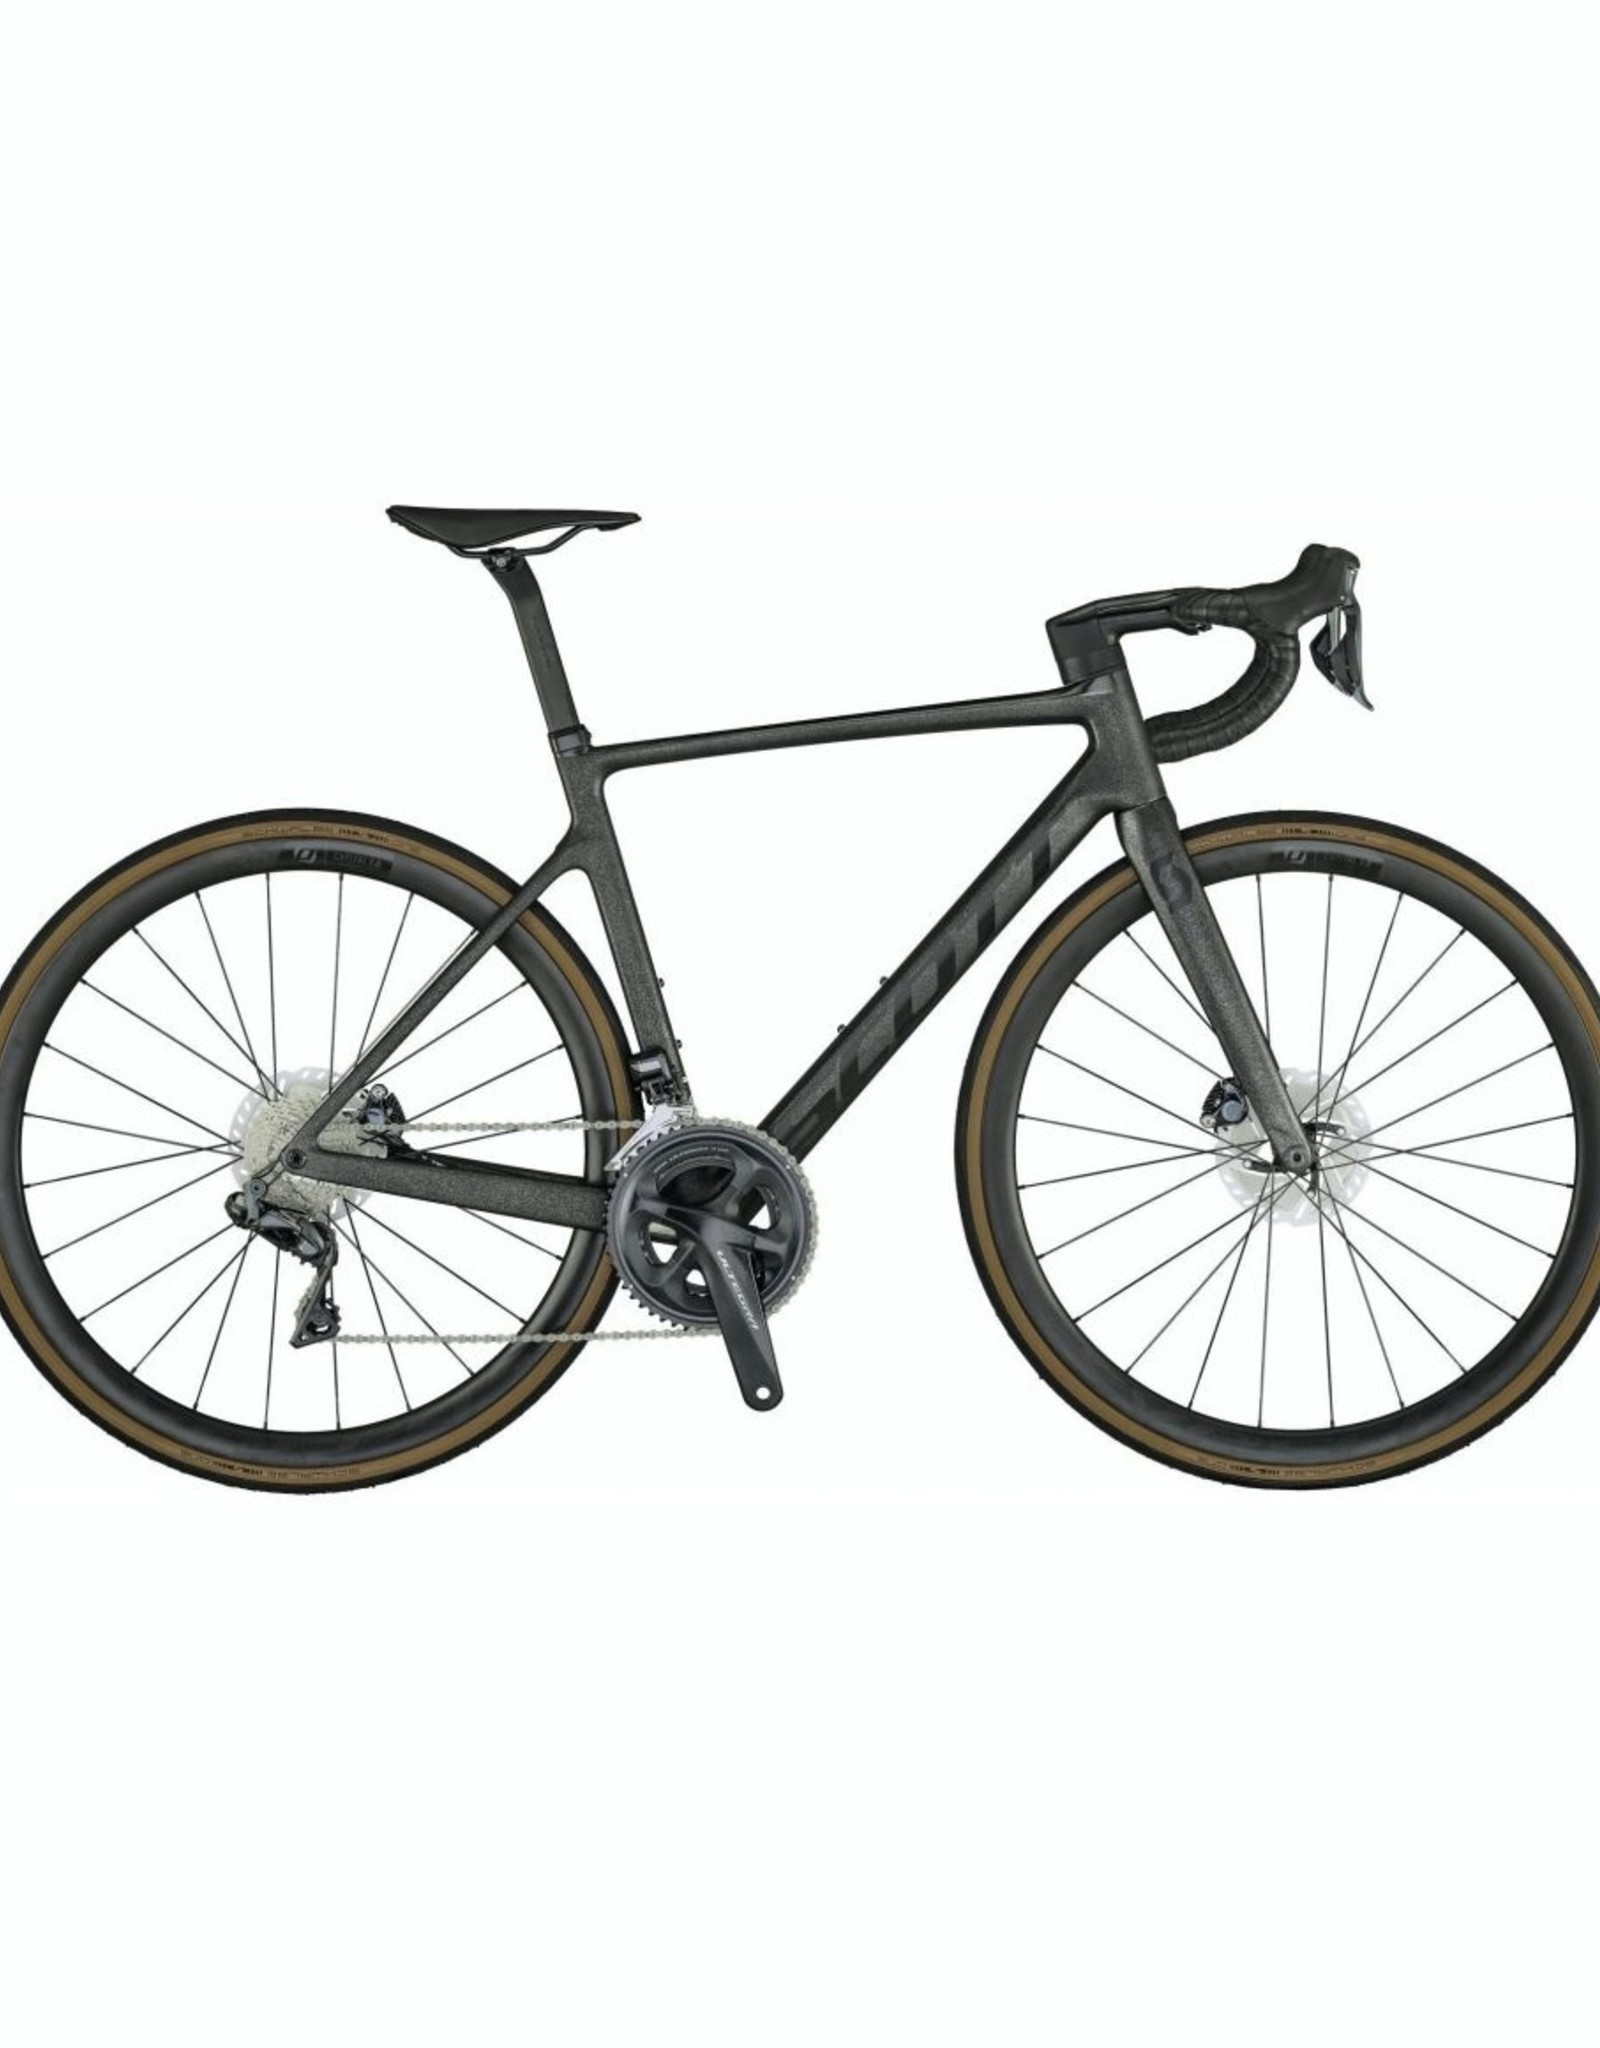 Scott Addict RC 15 2021 Carbon Onyx Black 54cm